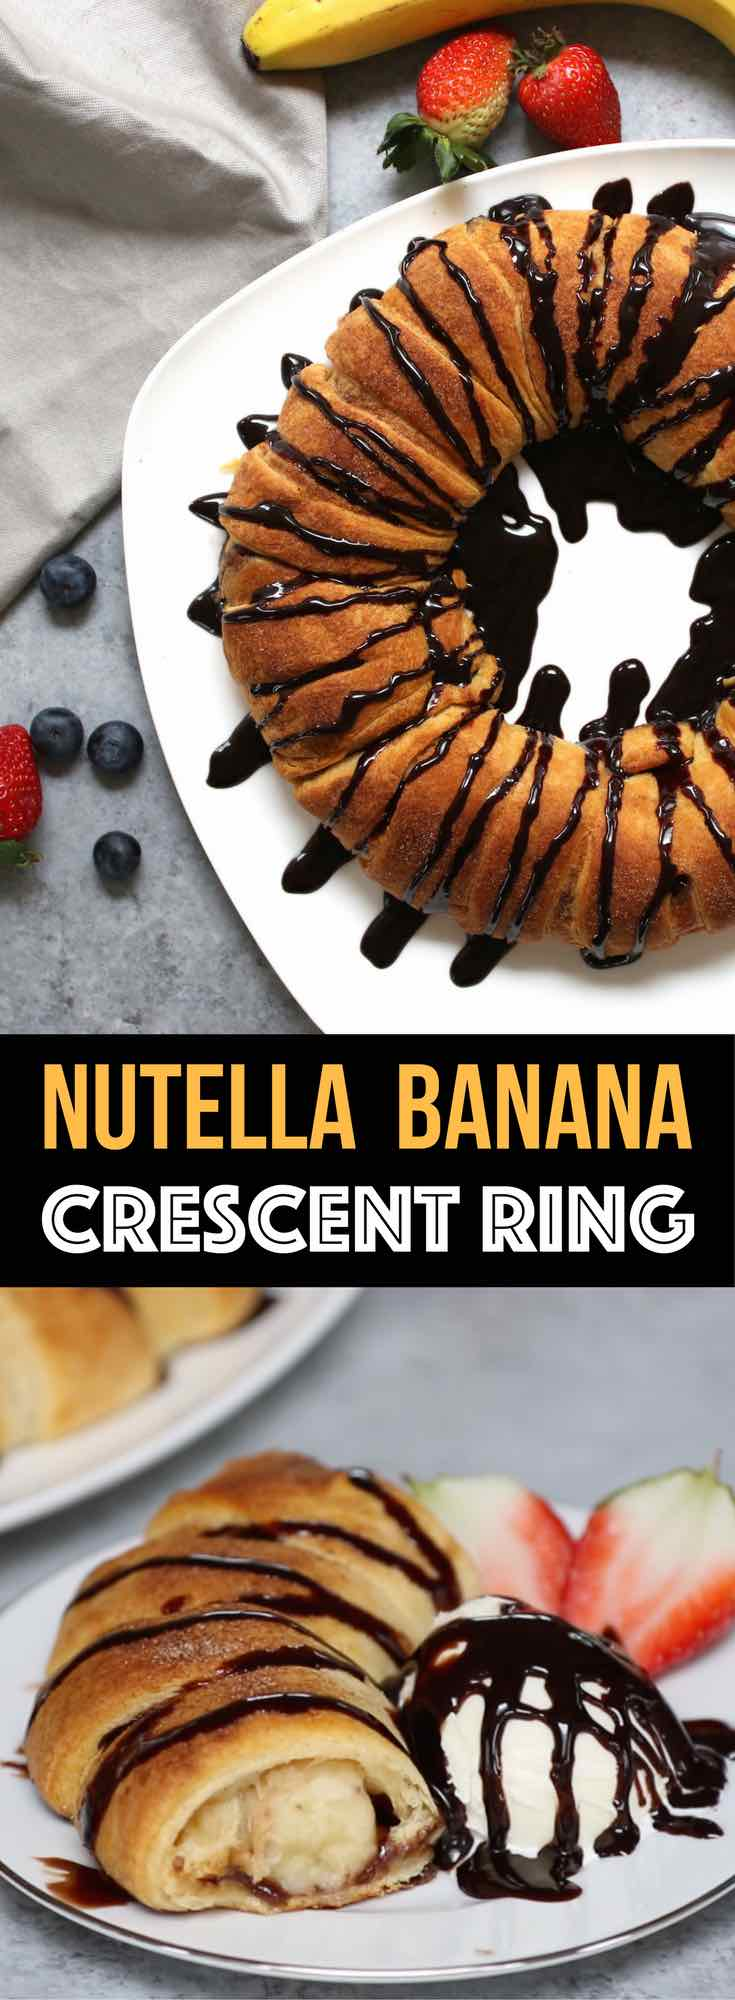 This beautiful Nutella And Banana Stuffed Crescent Rolls Ring will be everyone's favorite dessert choice. Stuff a crescent roll with Nutella and banana, then sprinkle cinnamon sugar, and bake! Drizzle with chocolate and serve with ice cream. Perfect for brunch as well. So good! Quick and easy recipe. Video recipe.